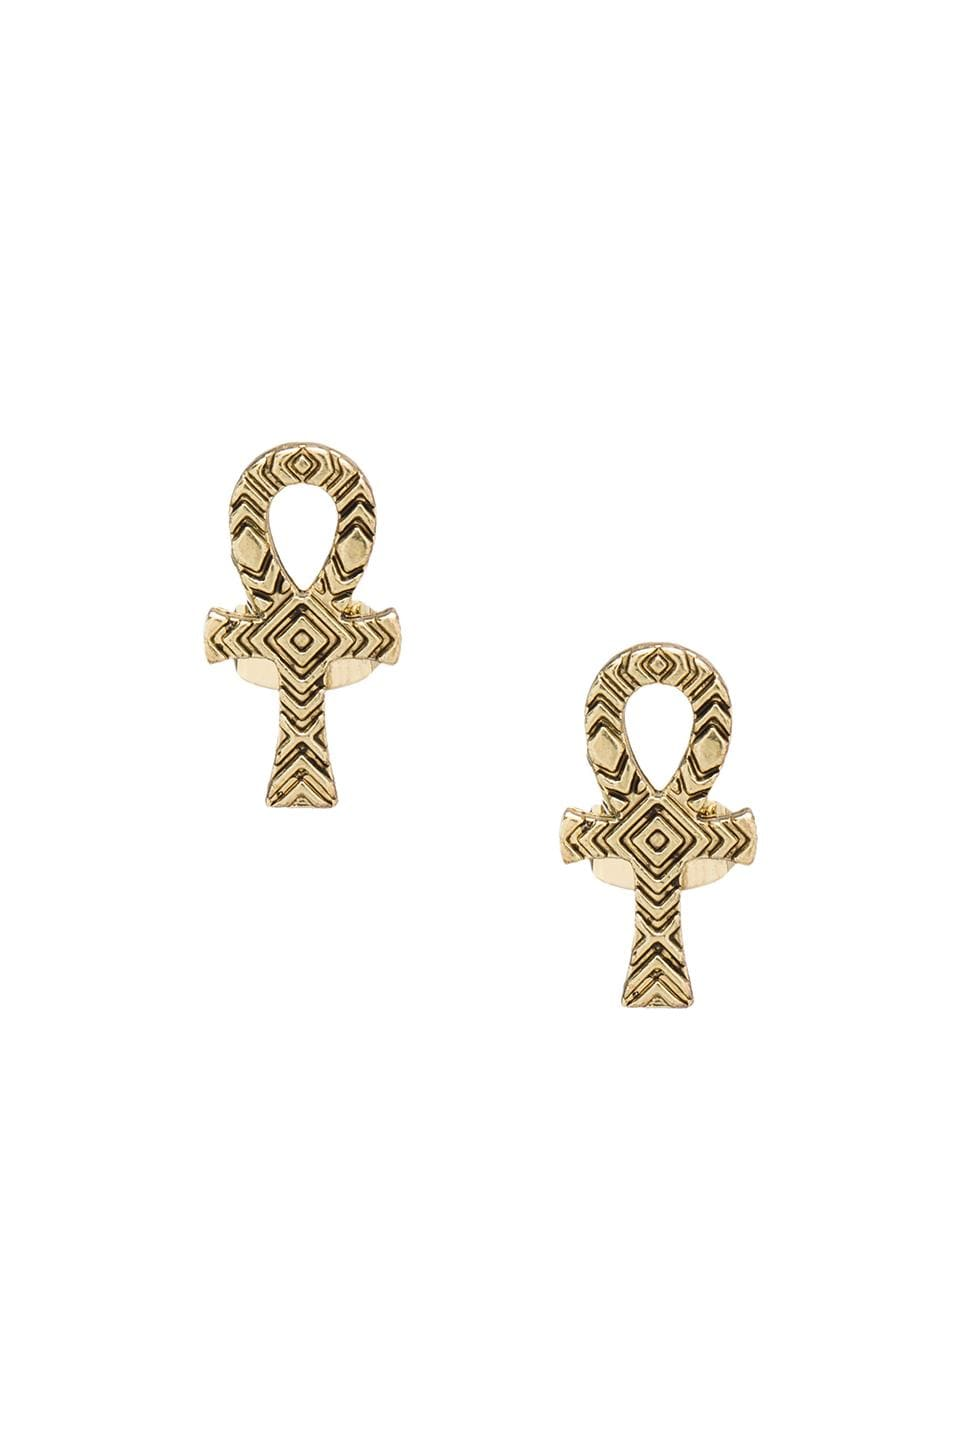 House of Harlow 1960 House of Harlow Knot of Isis Studs in Gold